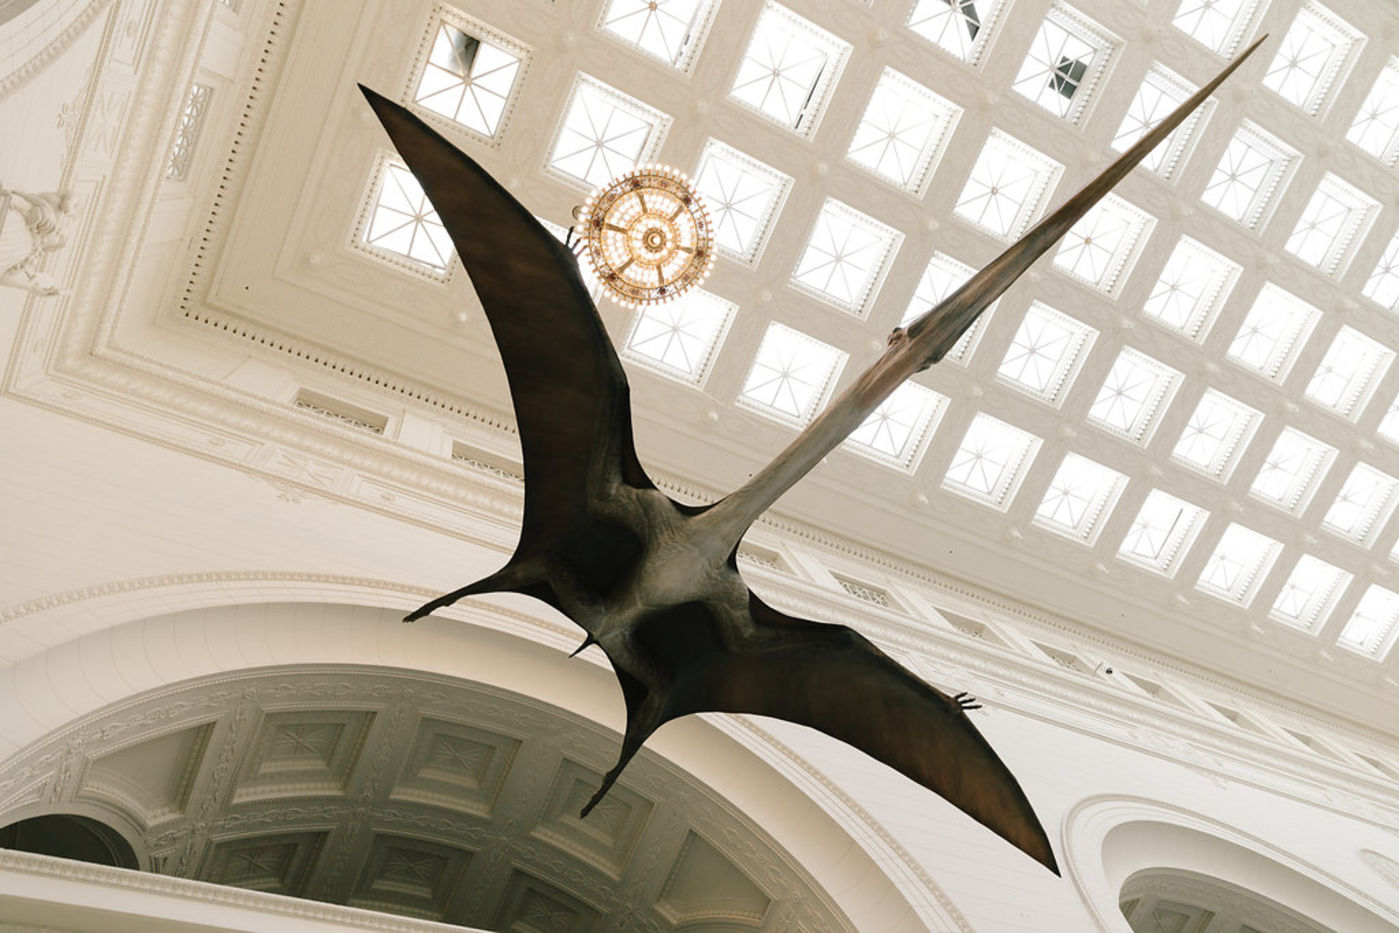 Looking up at the underside of a pterosaur model suspended from the ceiling in the museum's main hall. Skylights and a round light fixture, along with neoclassical architectural details, are visible.